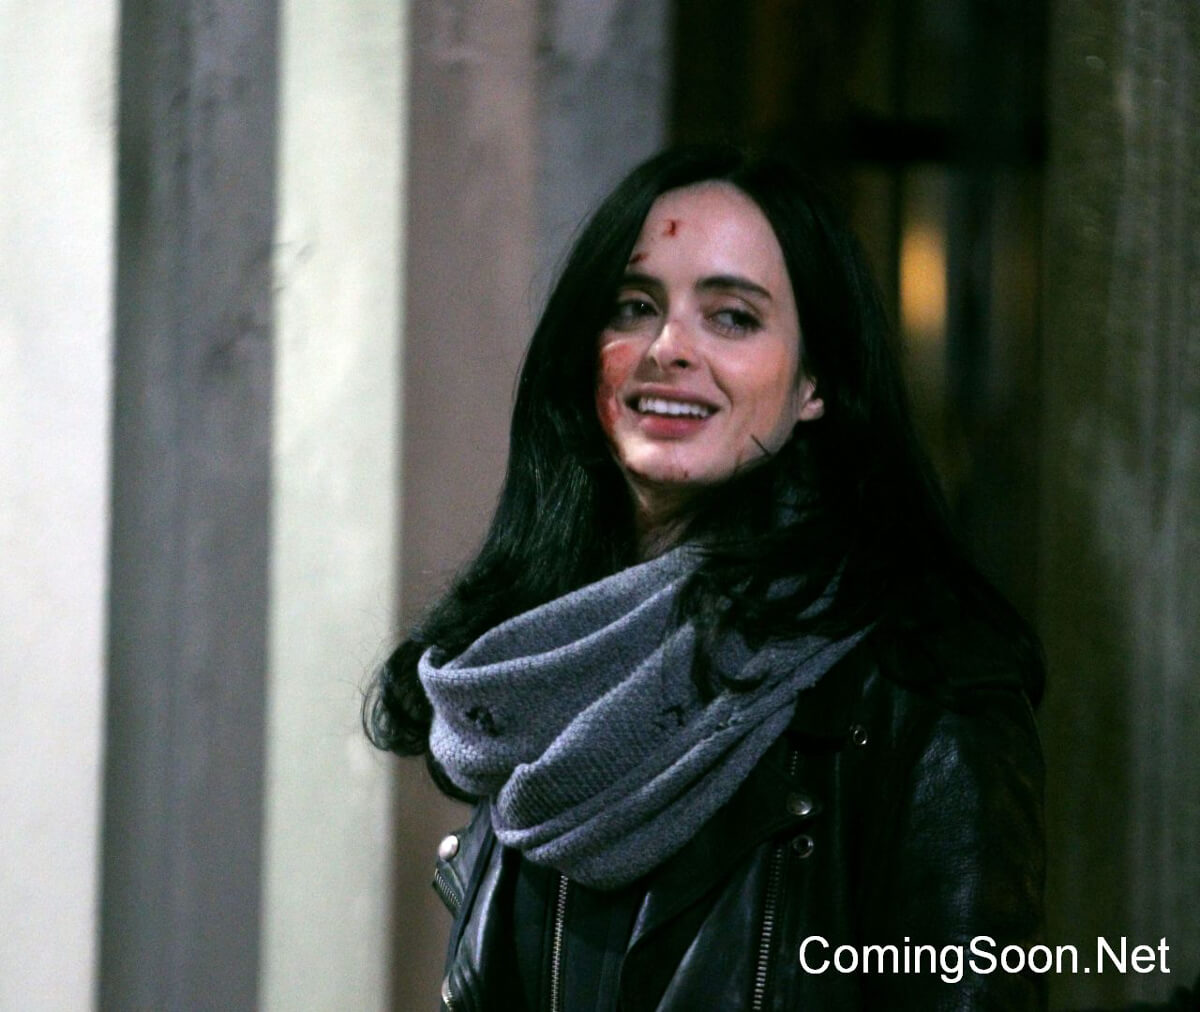 http://www.superherohype.com/news/384969-jessica-jones-meets-misty-knight-in-first-defenders-set-photos#/